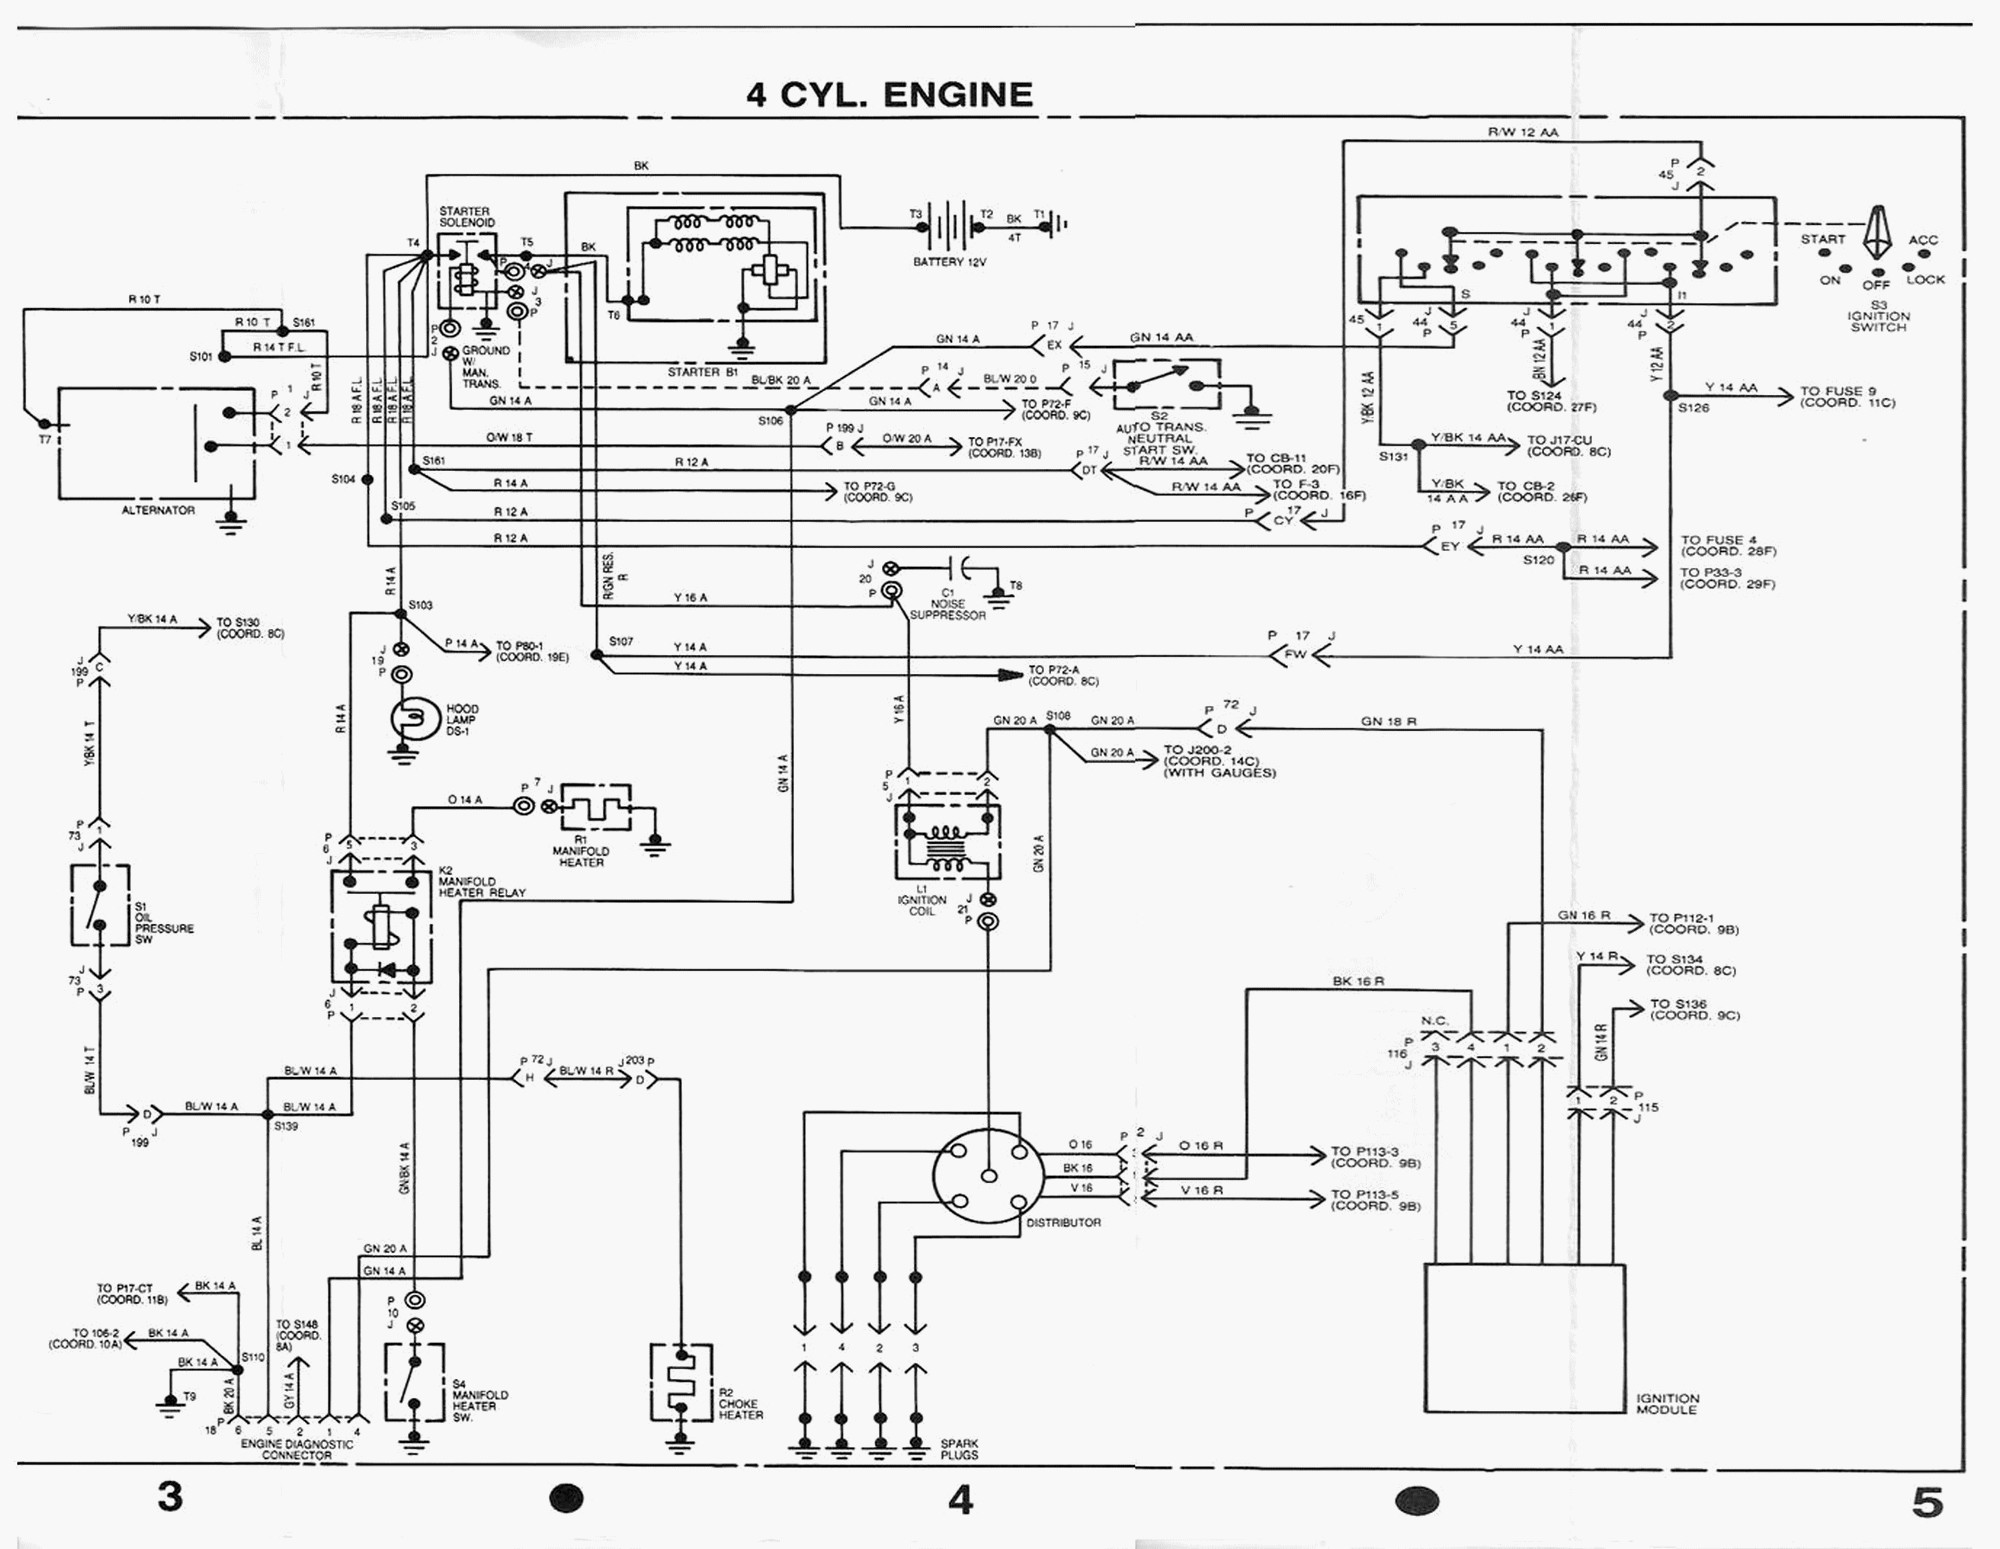 I 4 Engine amc evolution amc eagle forums \u2022 view topic downloads available eagle lift wiring diagram at gsmx.co